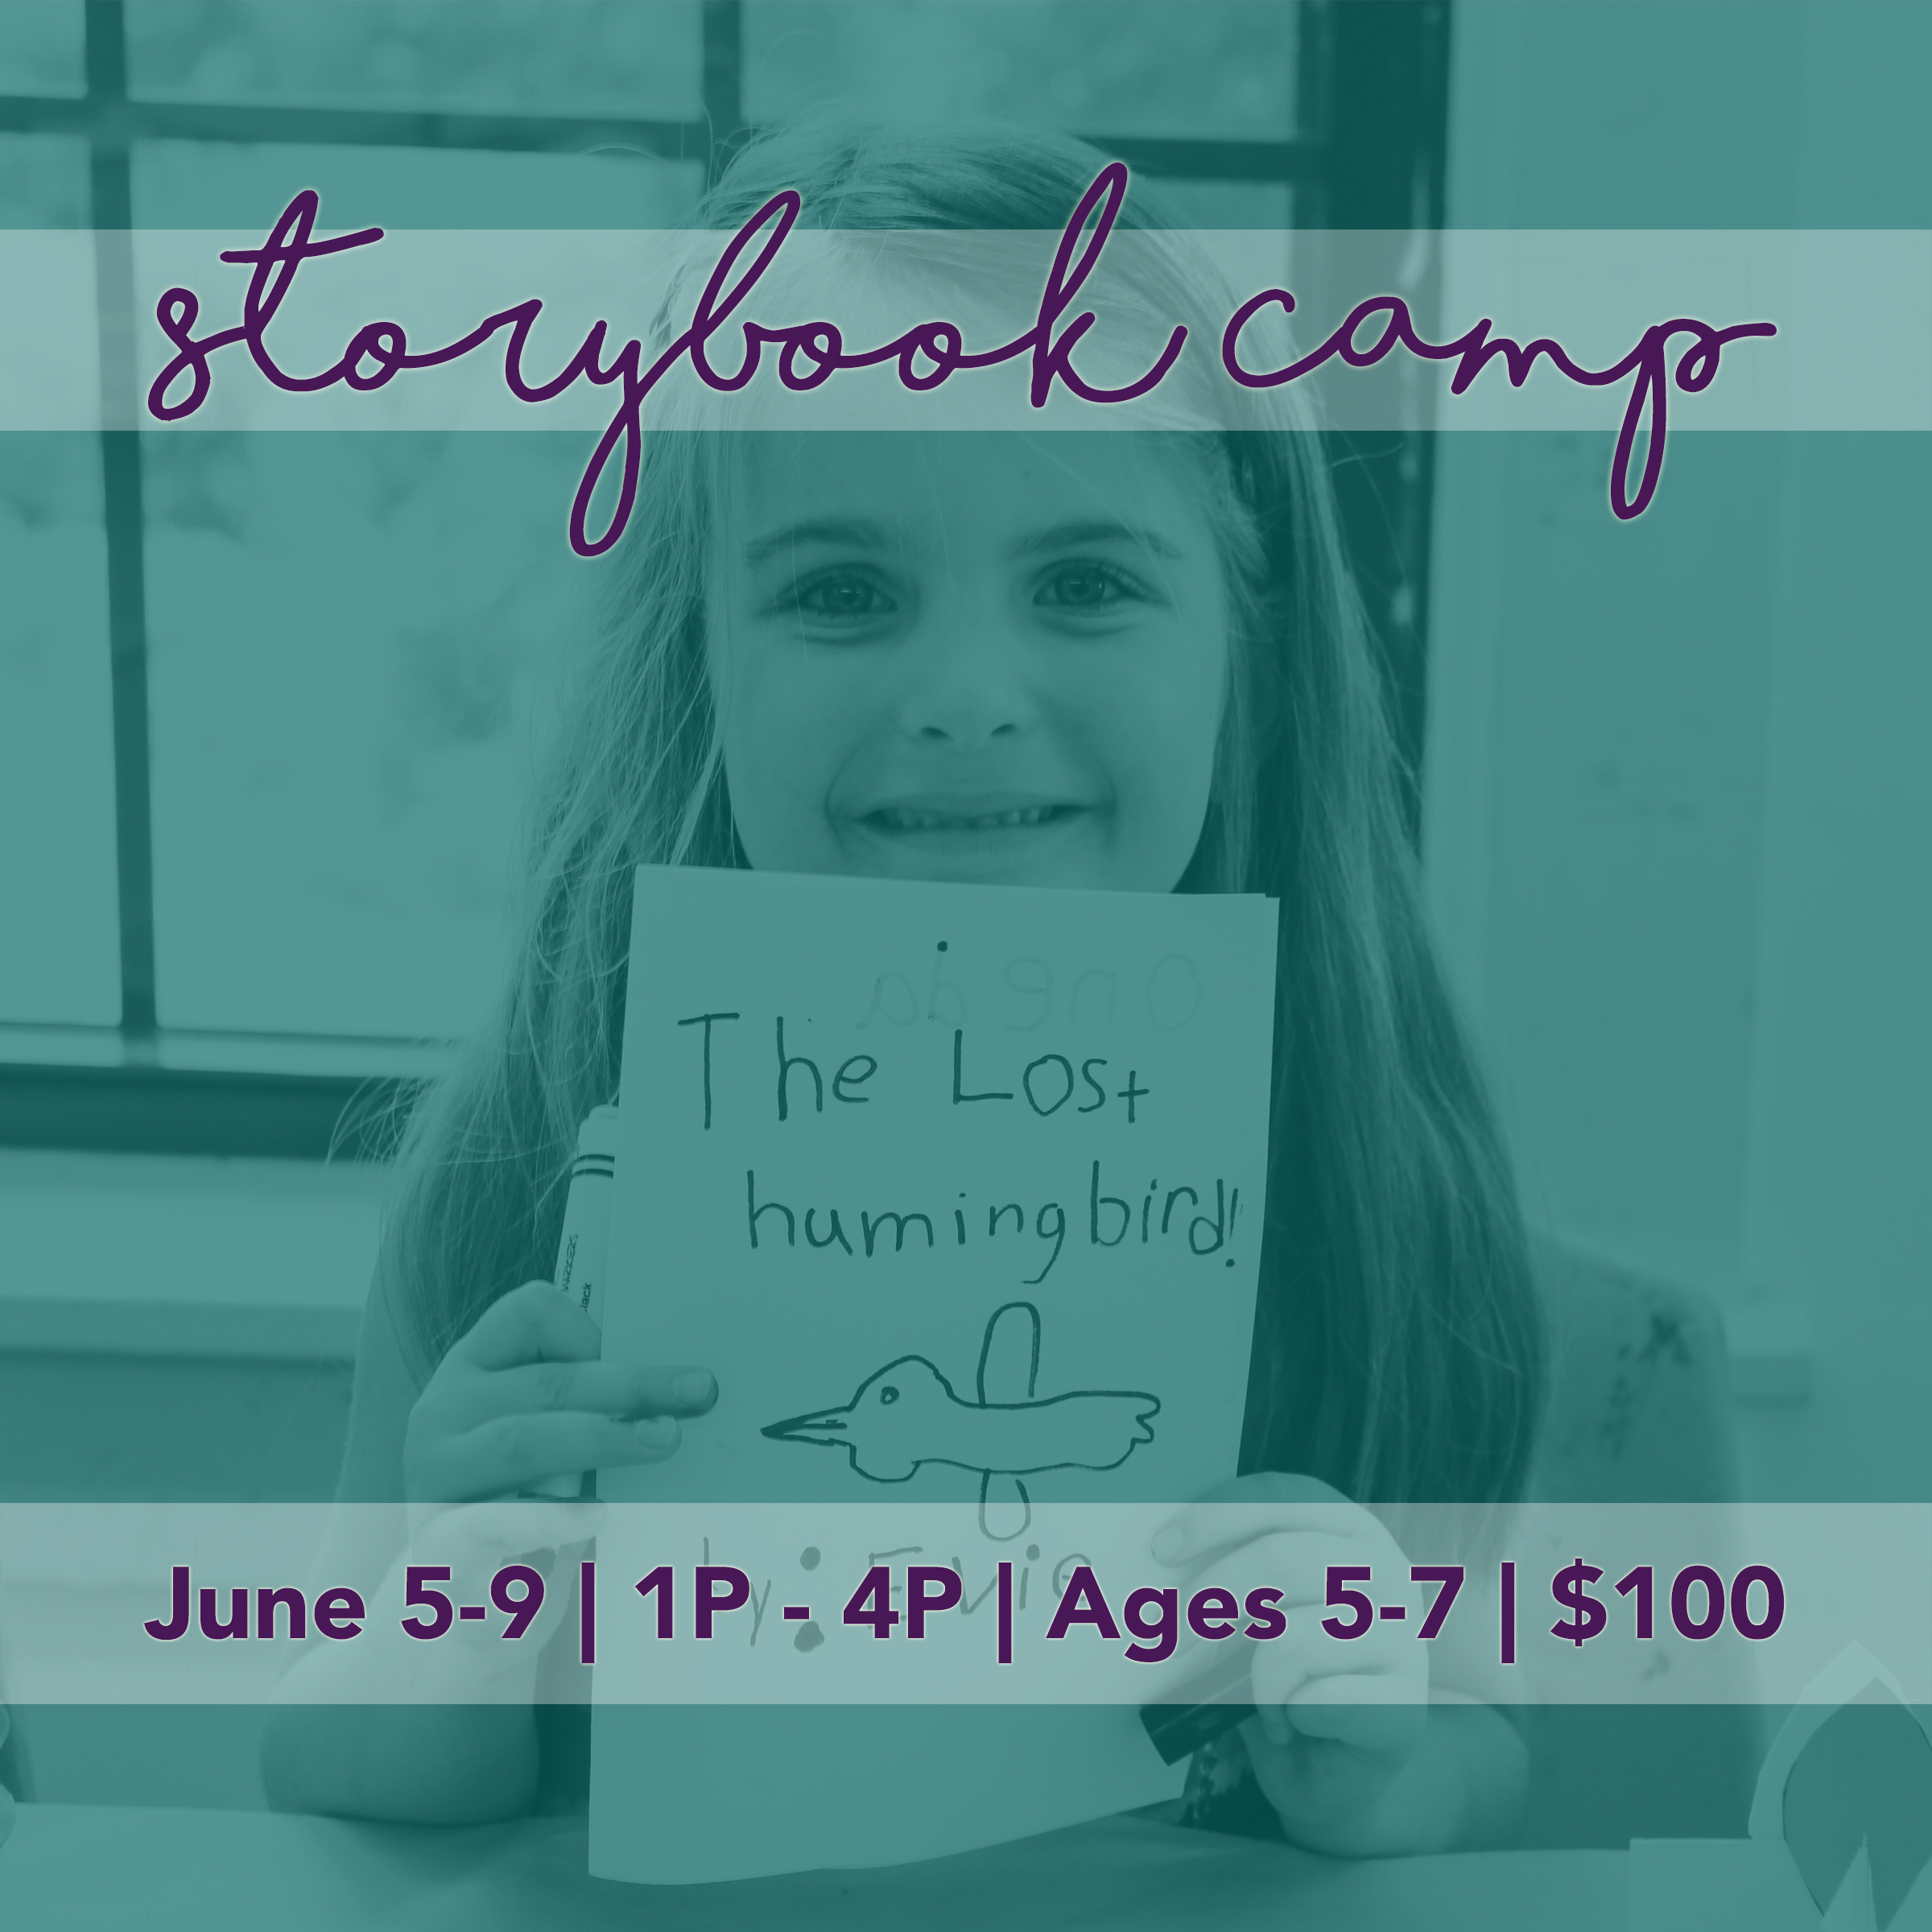 Storybook Camp - The Art Center of Waco